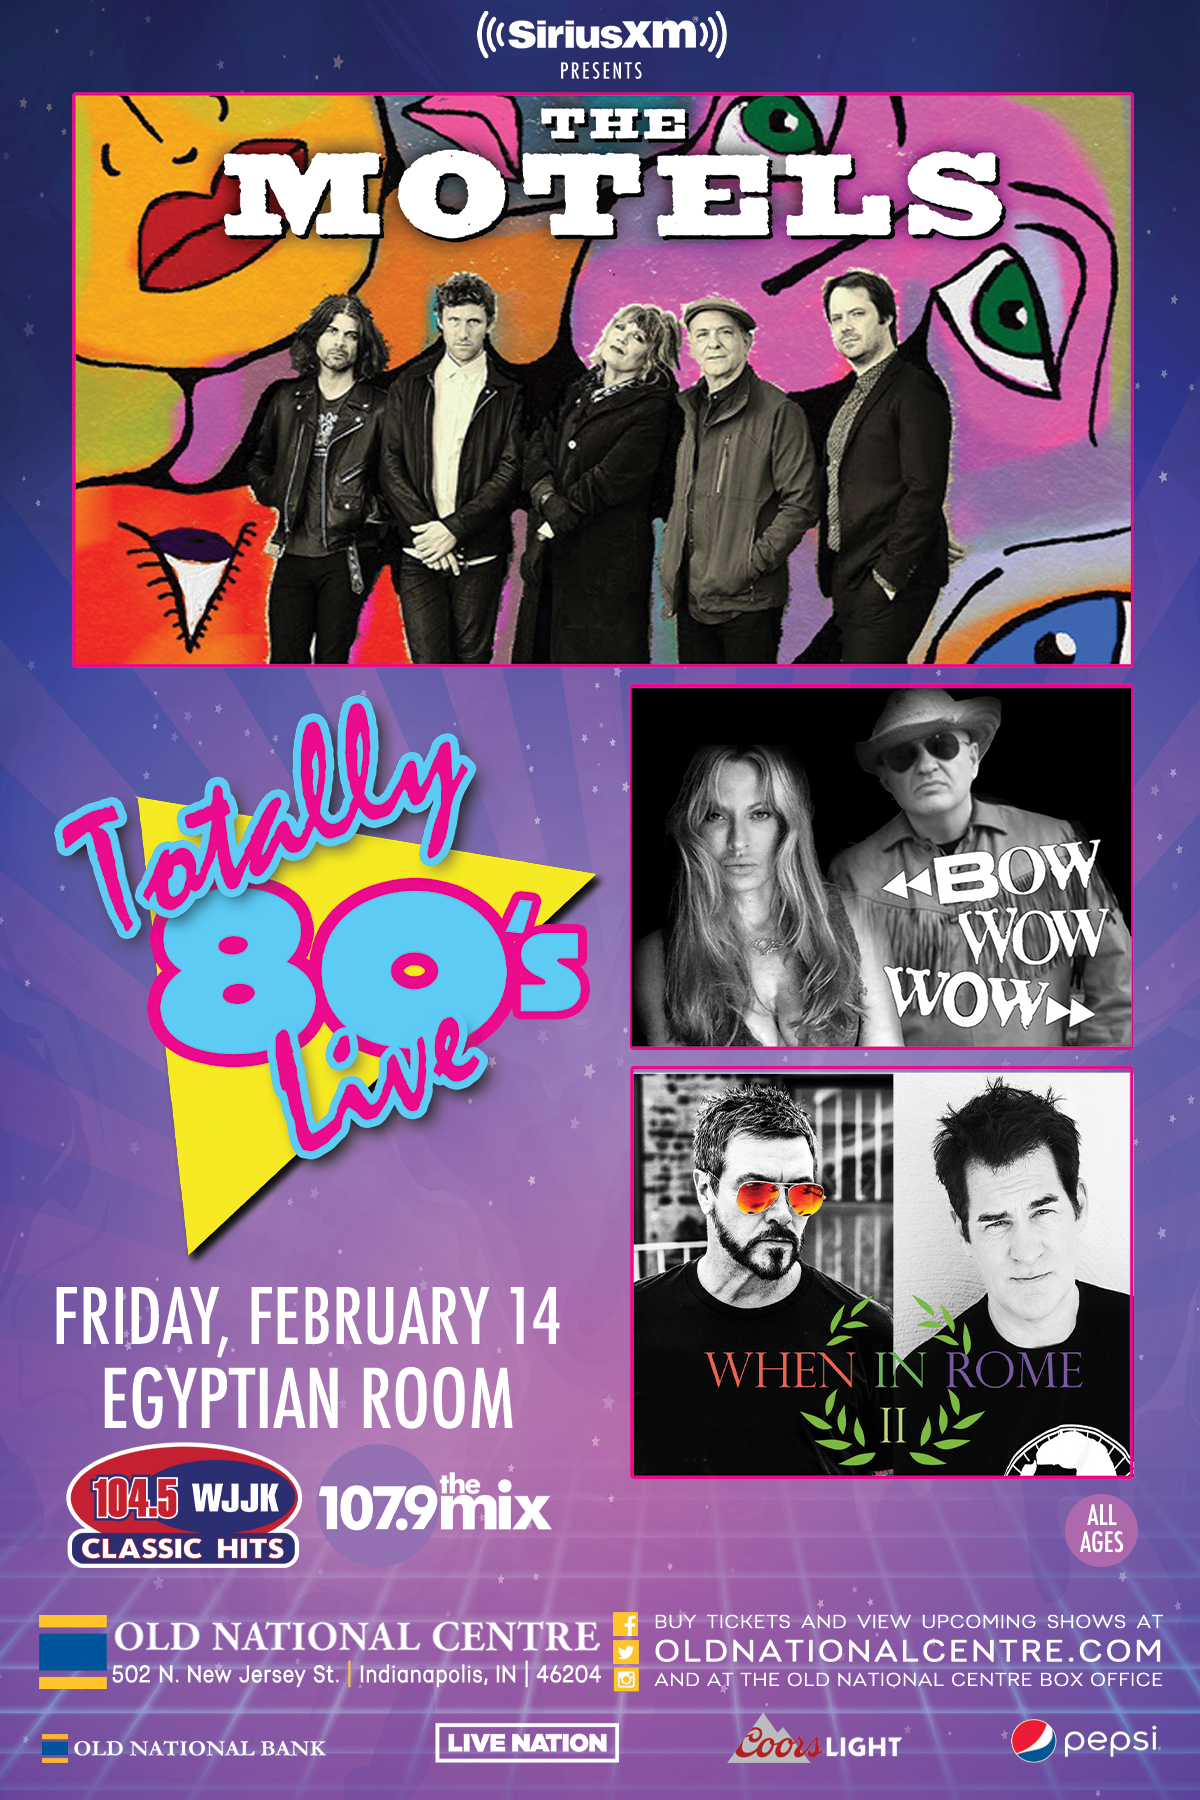 February 14 – Totally 80's Live with The Motels